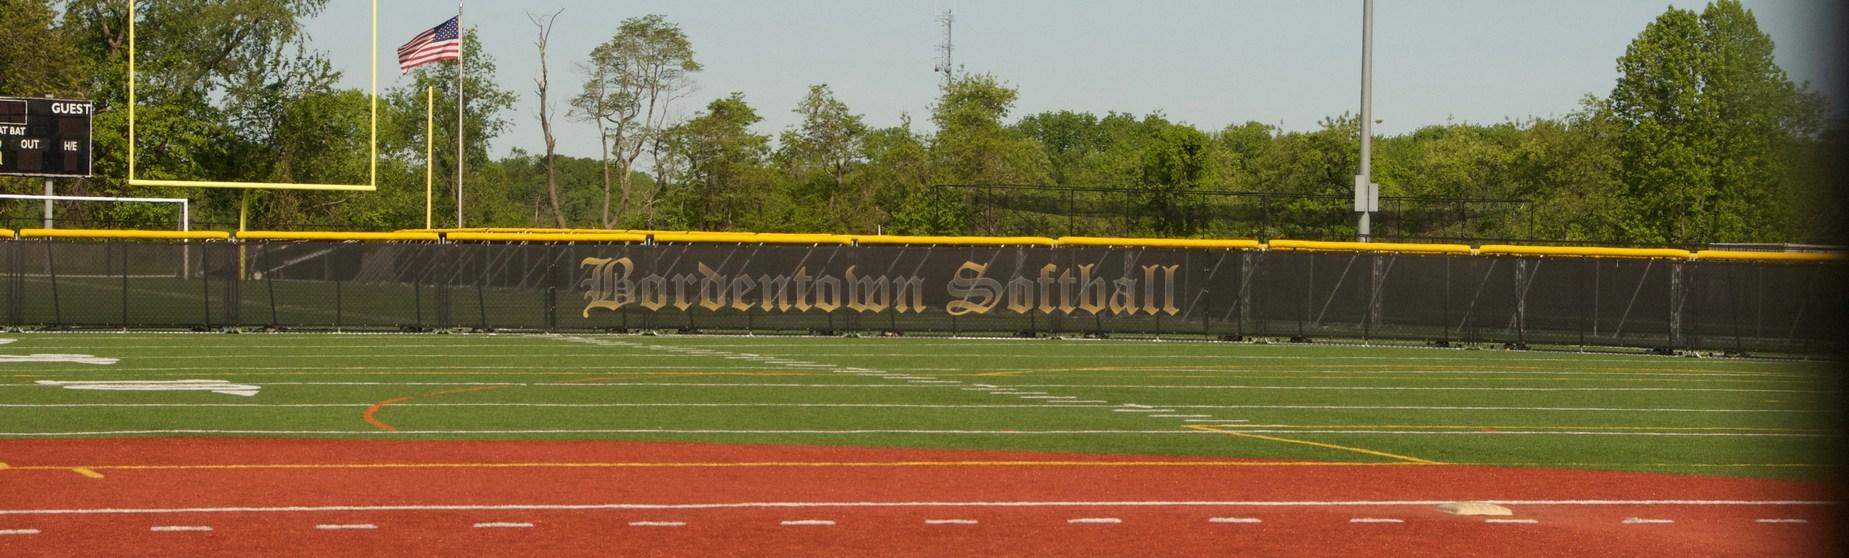 Bordentown Regional High School